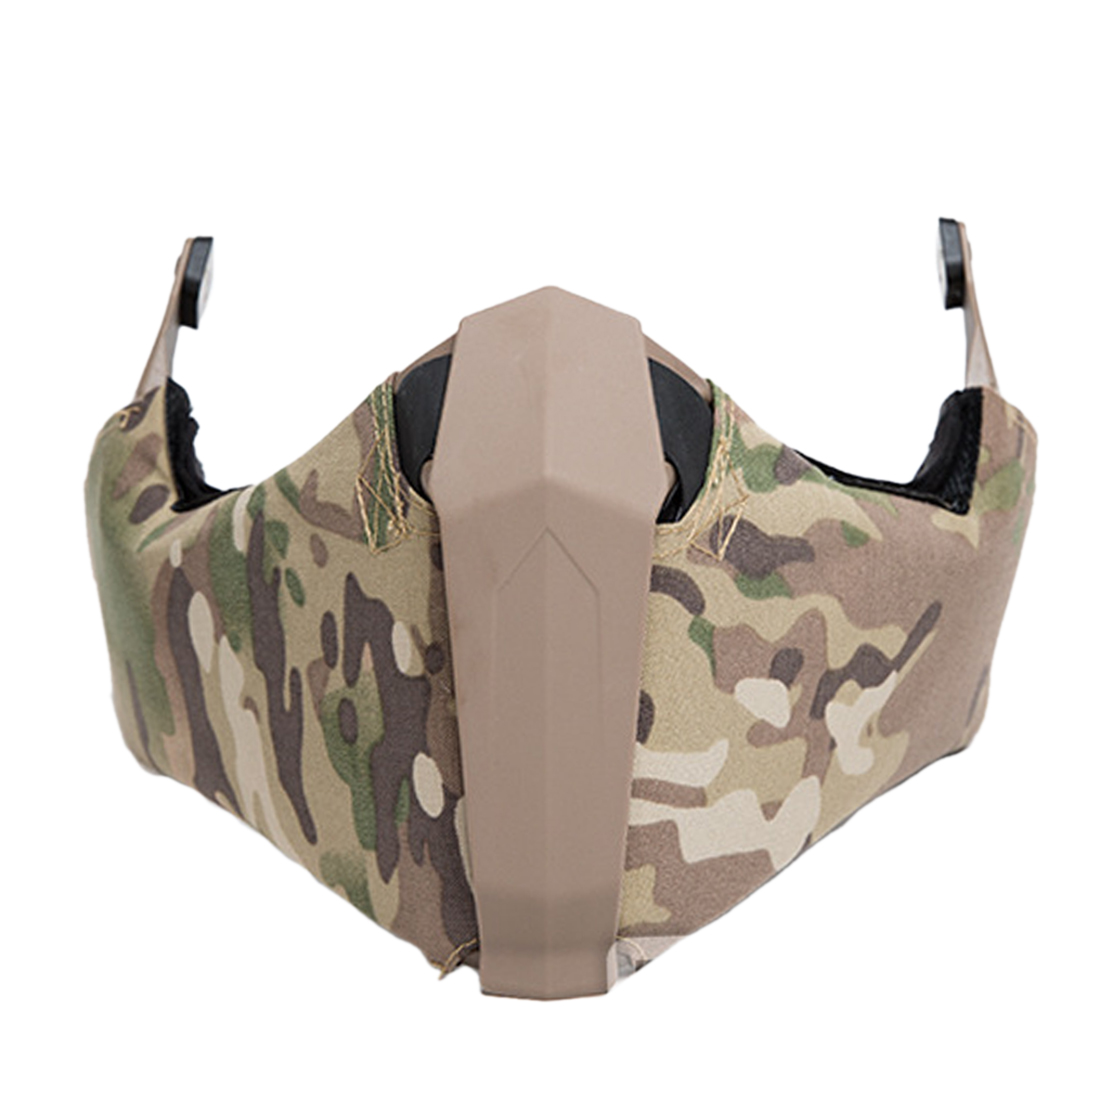 FMA Outdoor Activity Airsoft Breathability Mandible Half Face Mask for Helmet Rail - CamouflageFMA Outdoor Activity Airsoft Breathability Mandible Half Face Mask for Helmet Rail - Camouflage